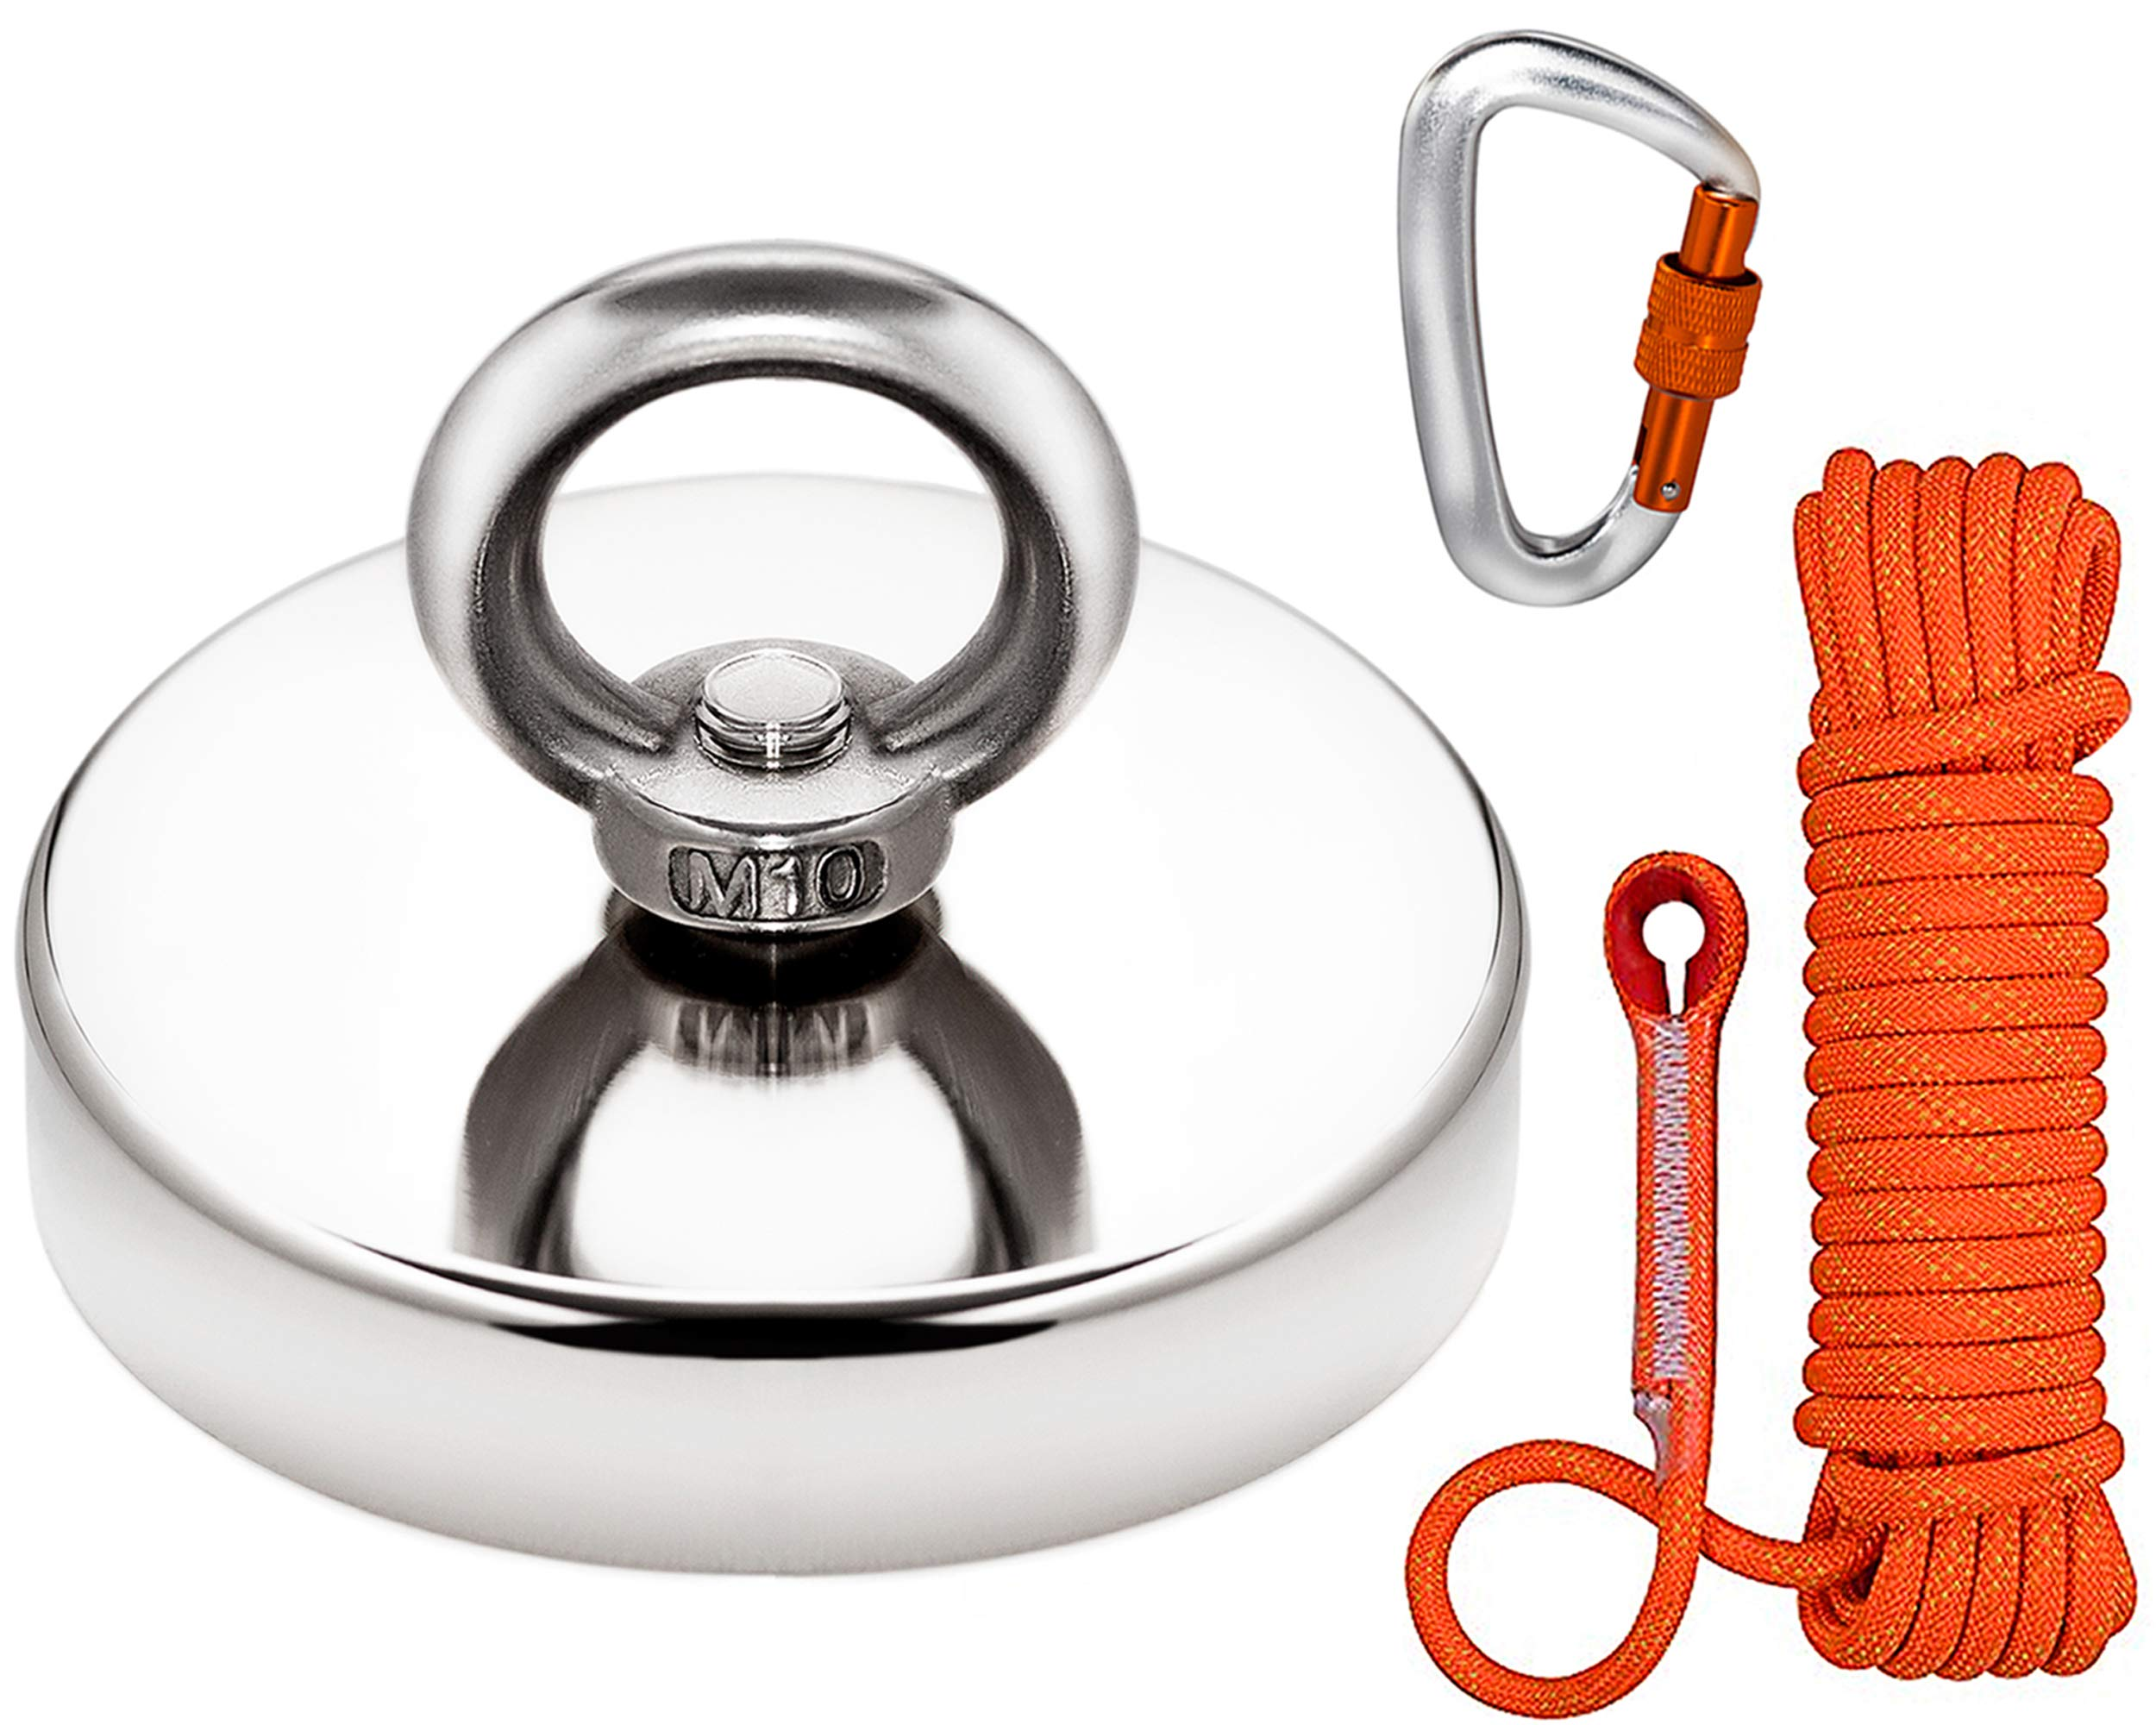 Super Strong Fishing Magnet | 1000 lbs Pulling Force Rare Earth Neodymium Magnet with Countersunk Hole and Eyebolt | Diameter 3.54 inch (90mm) with 8mm 65 feet Climbing Rope and 12KN Locking Carabiner